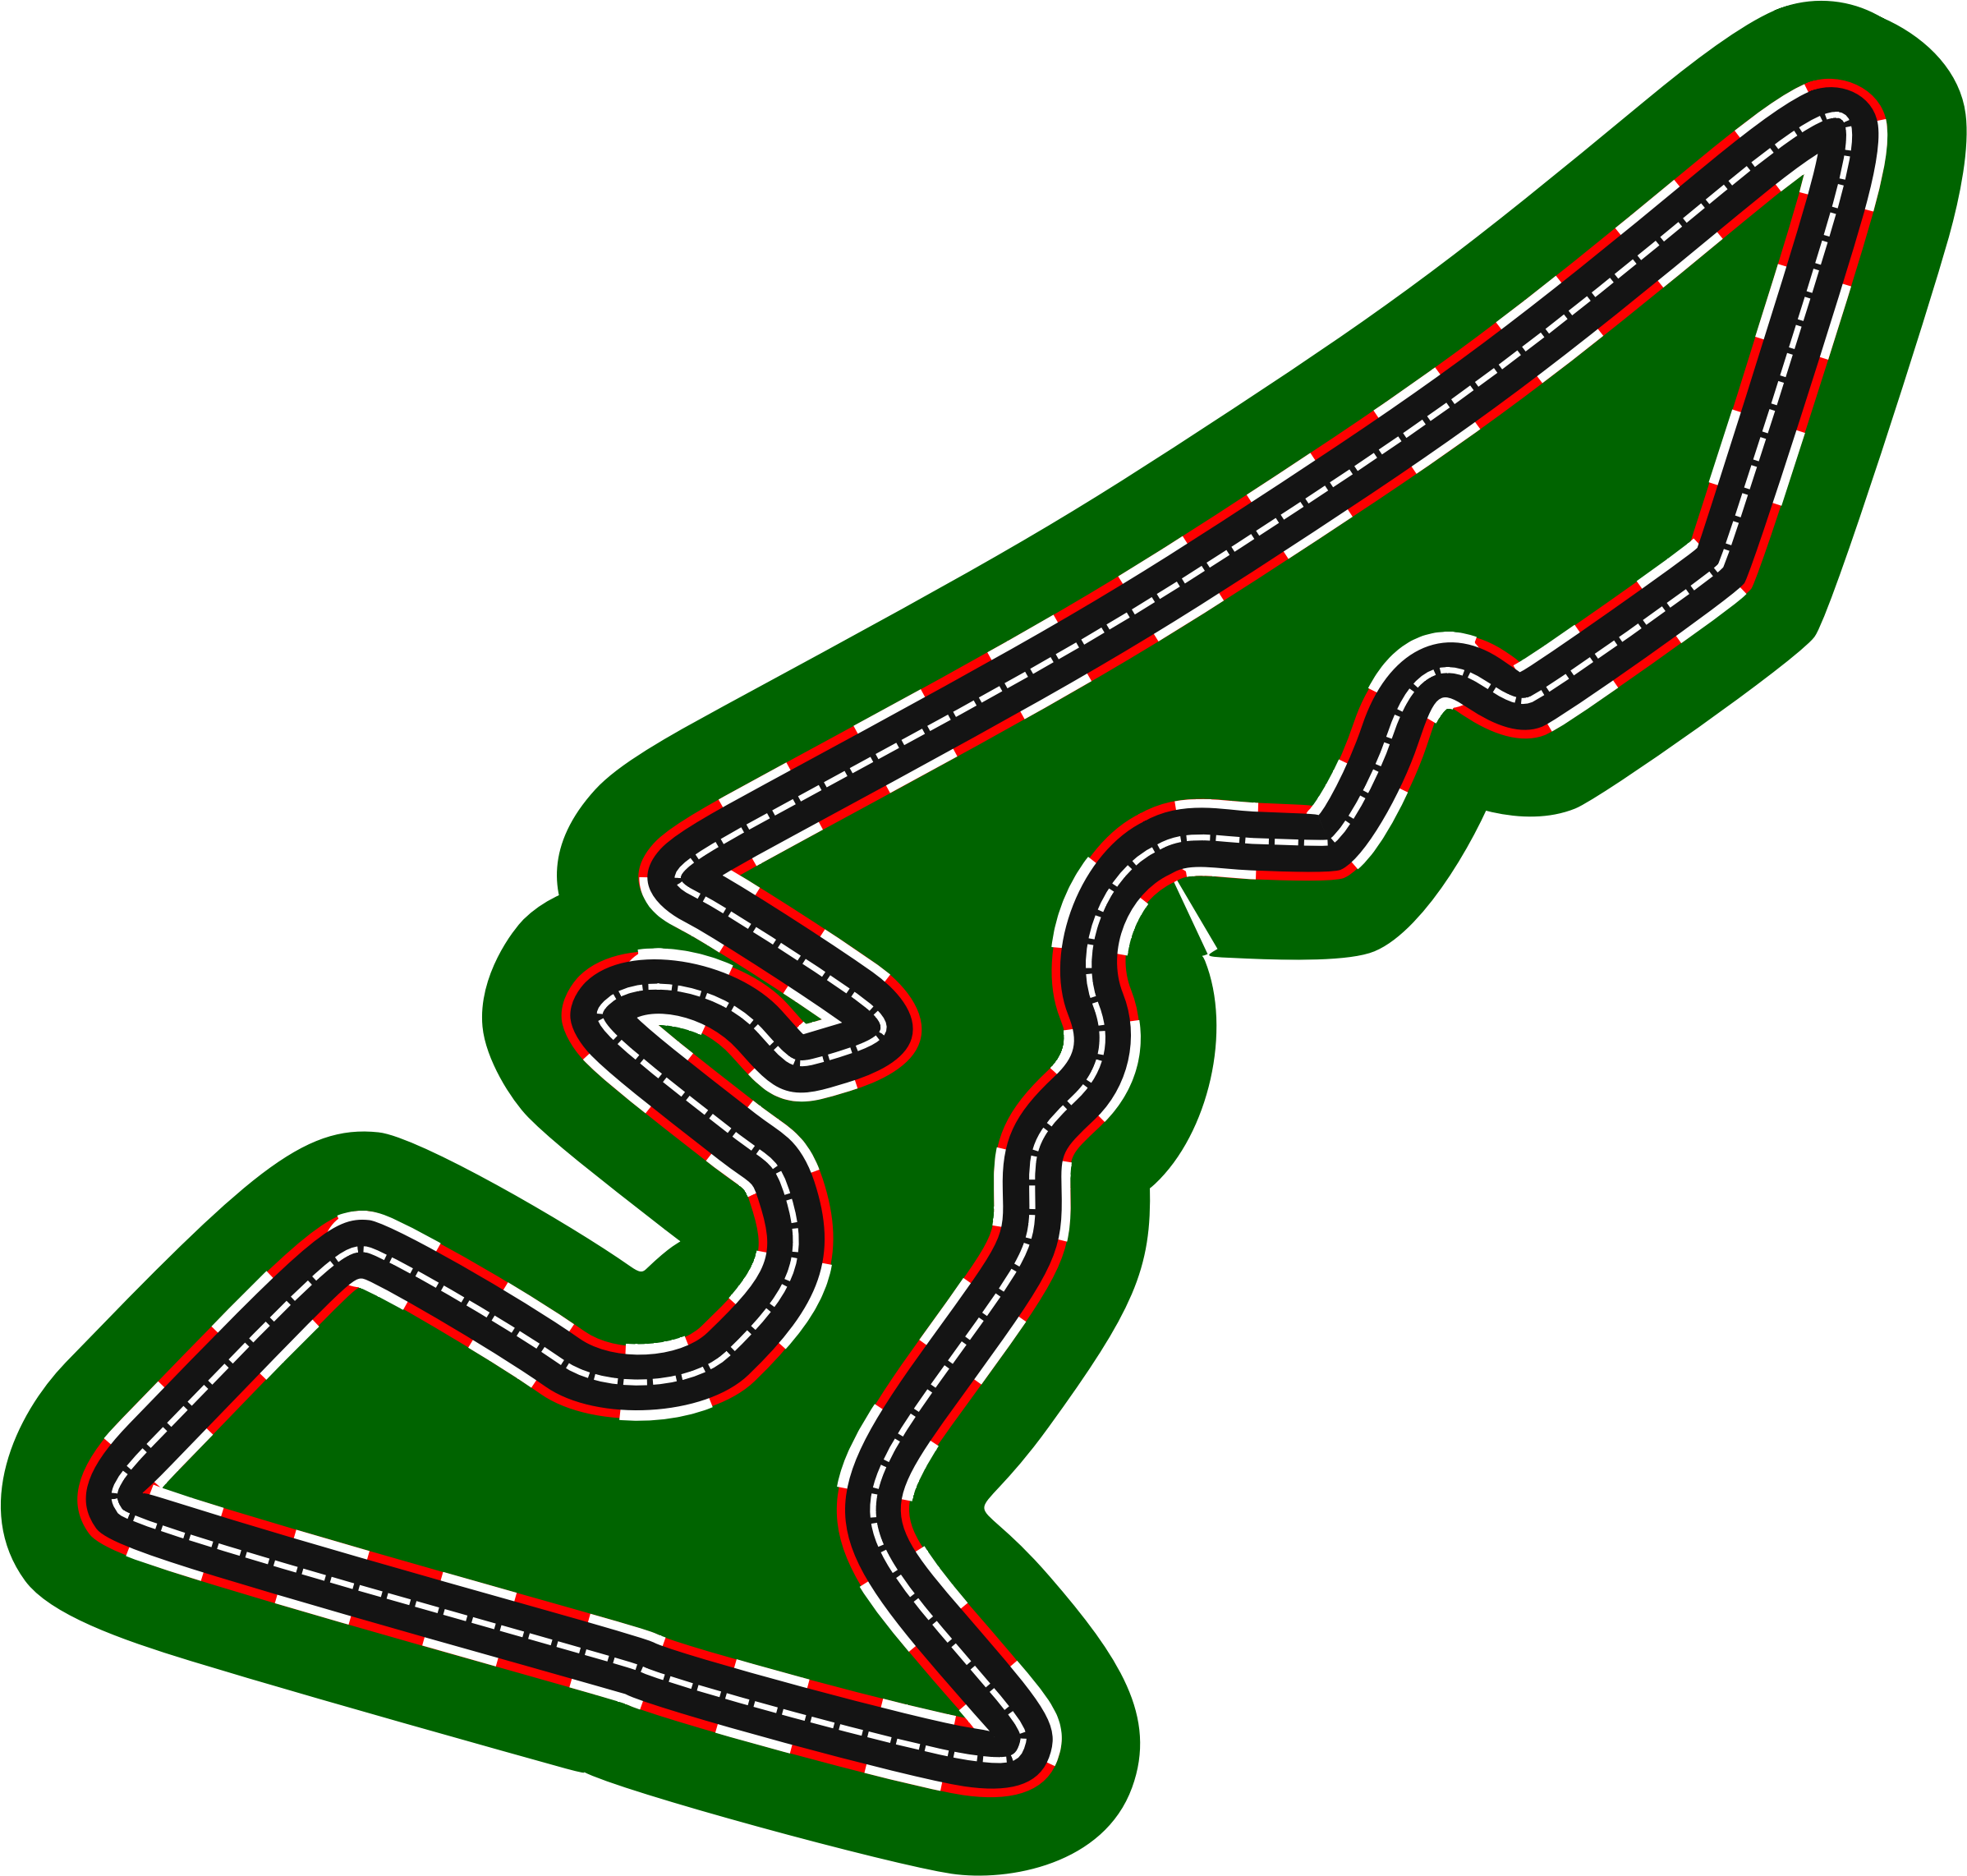 Race clipart racecourse. F circuits circuit of